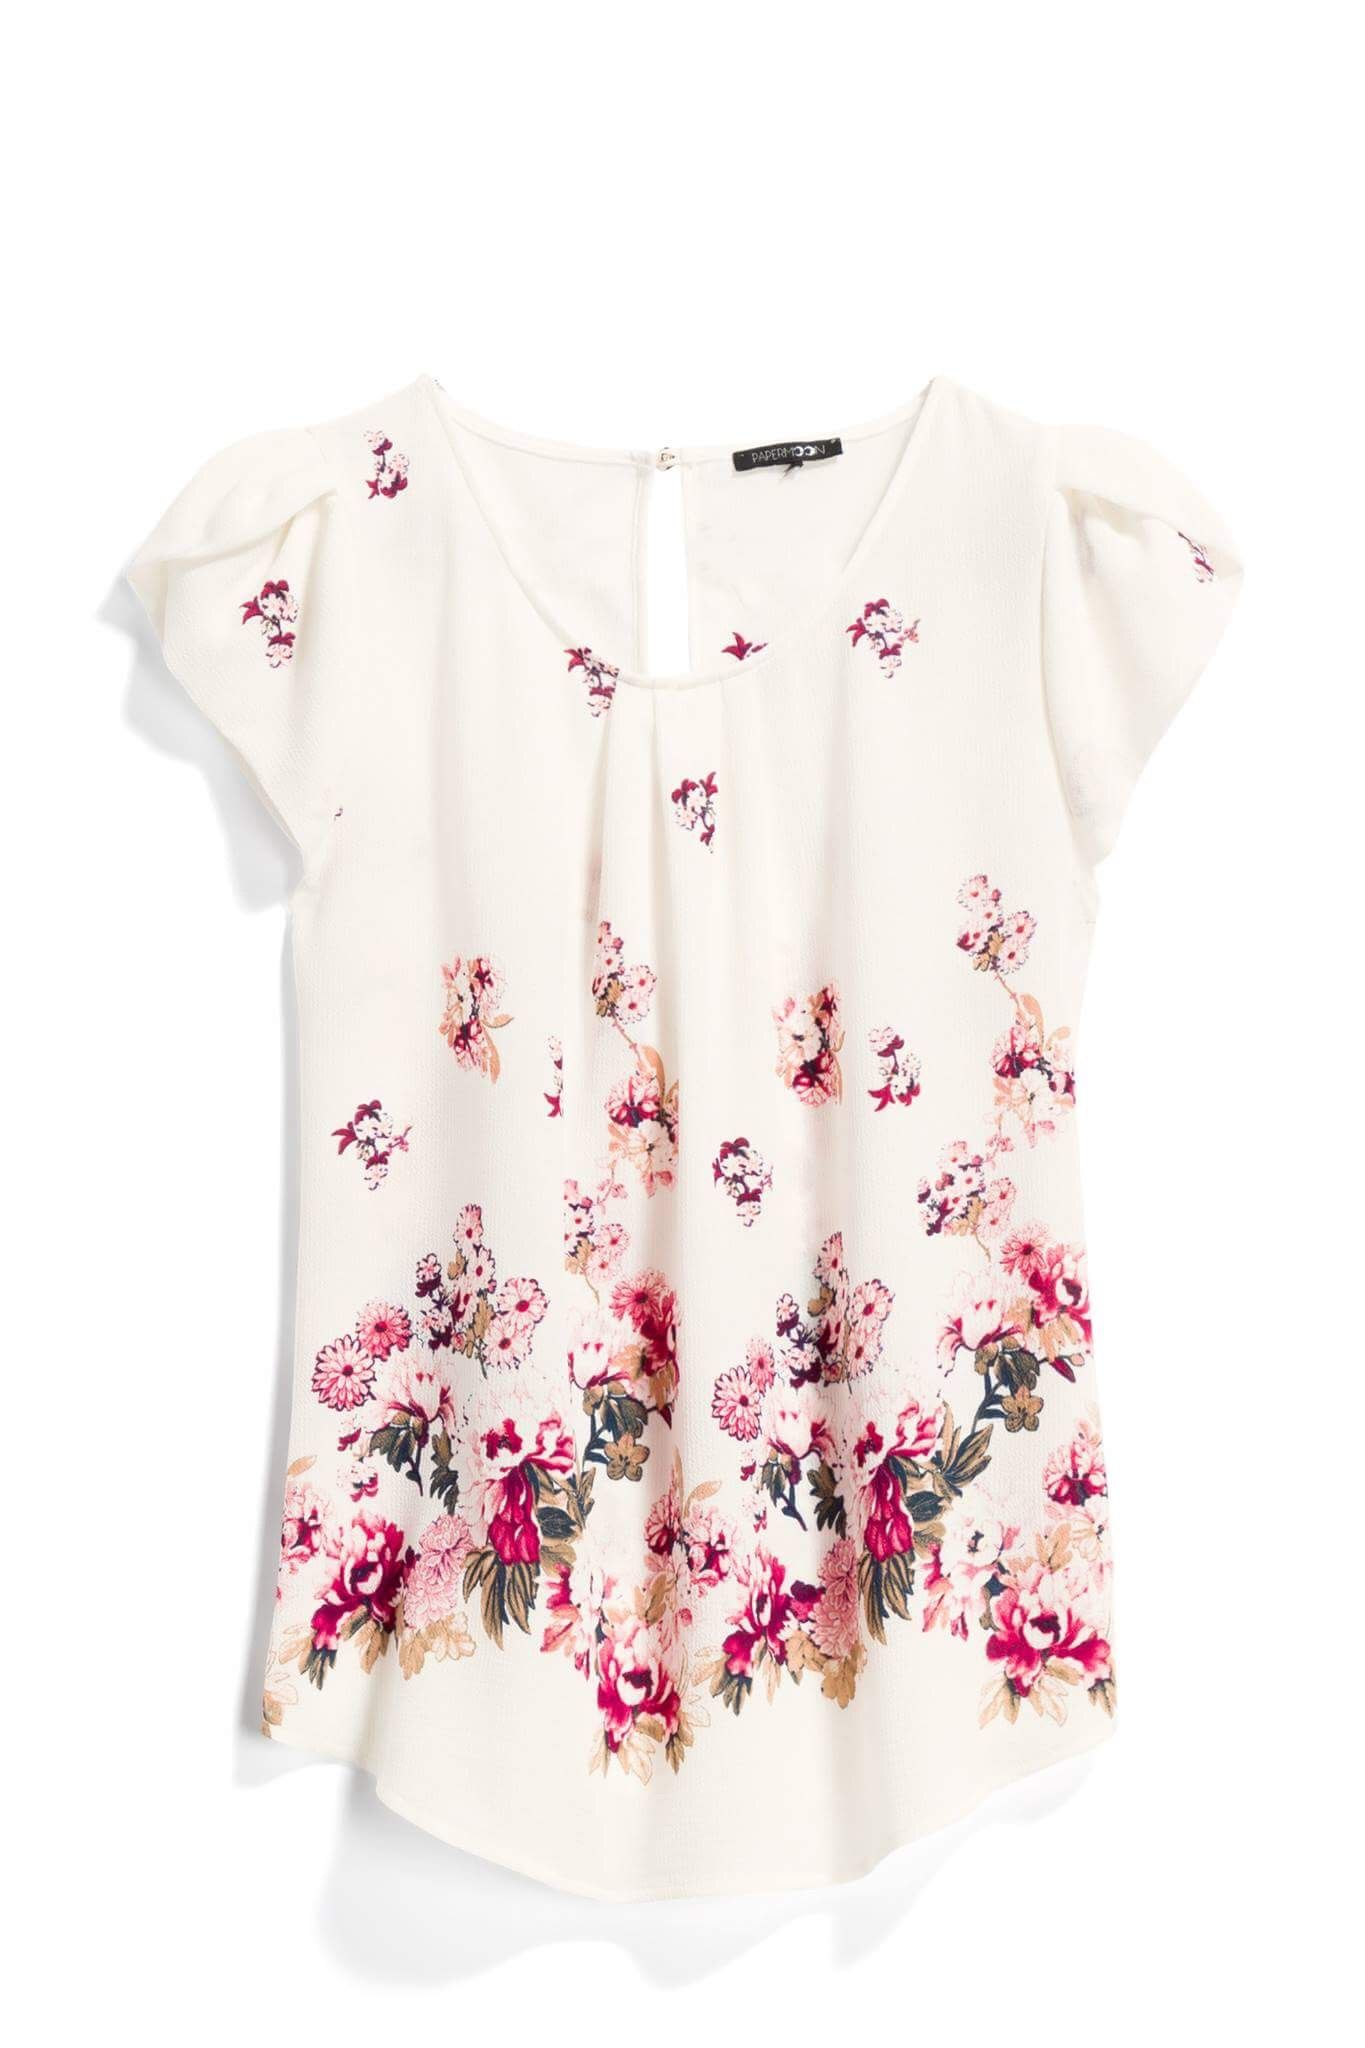 Stitch Fix Style Quiz - Referral link included - When you use my link 6b443a528